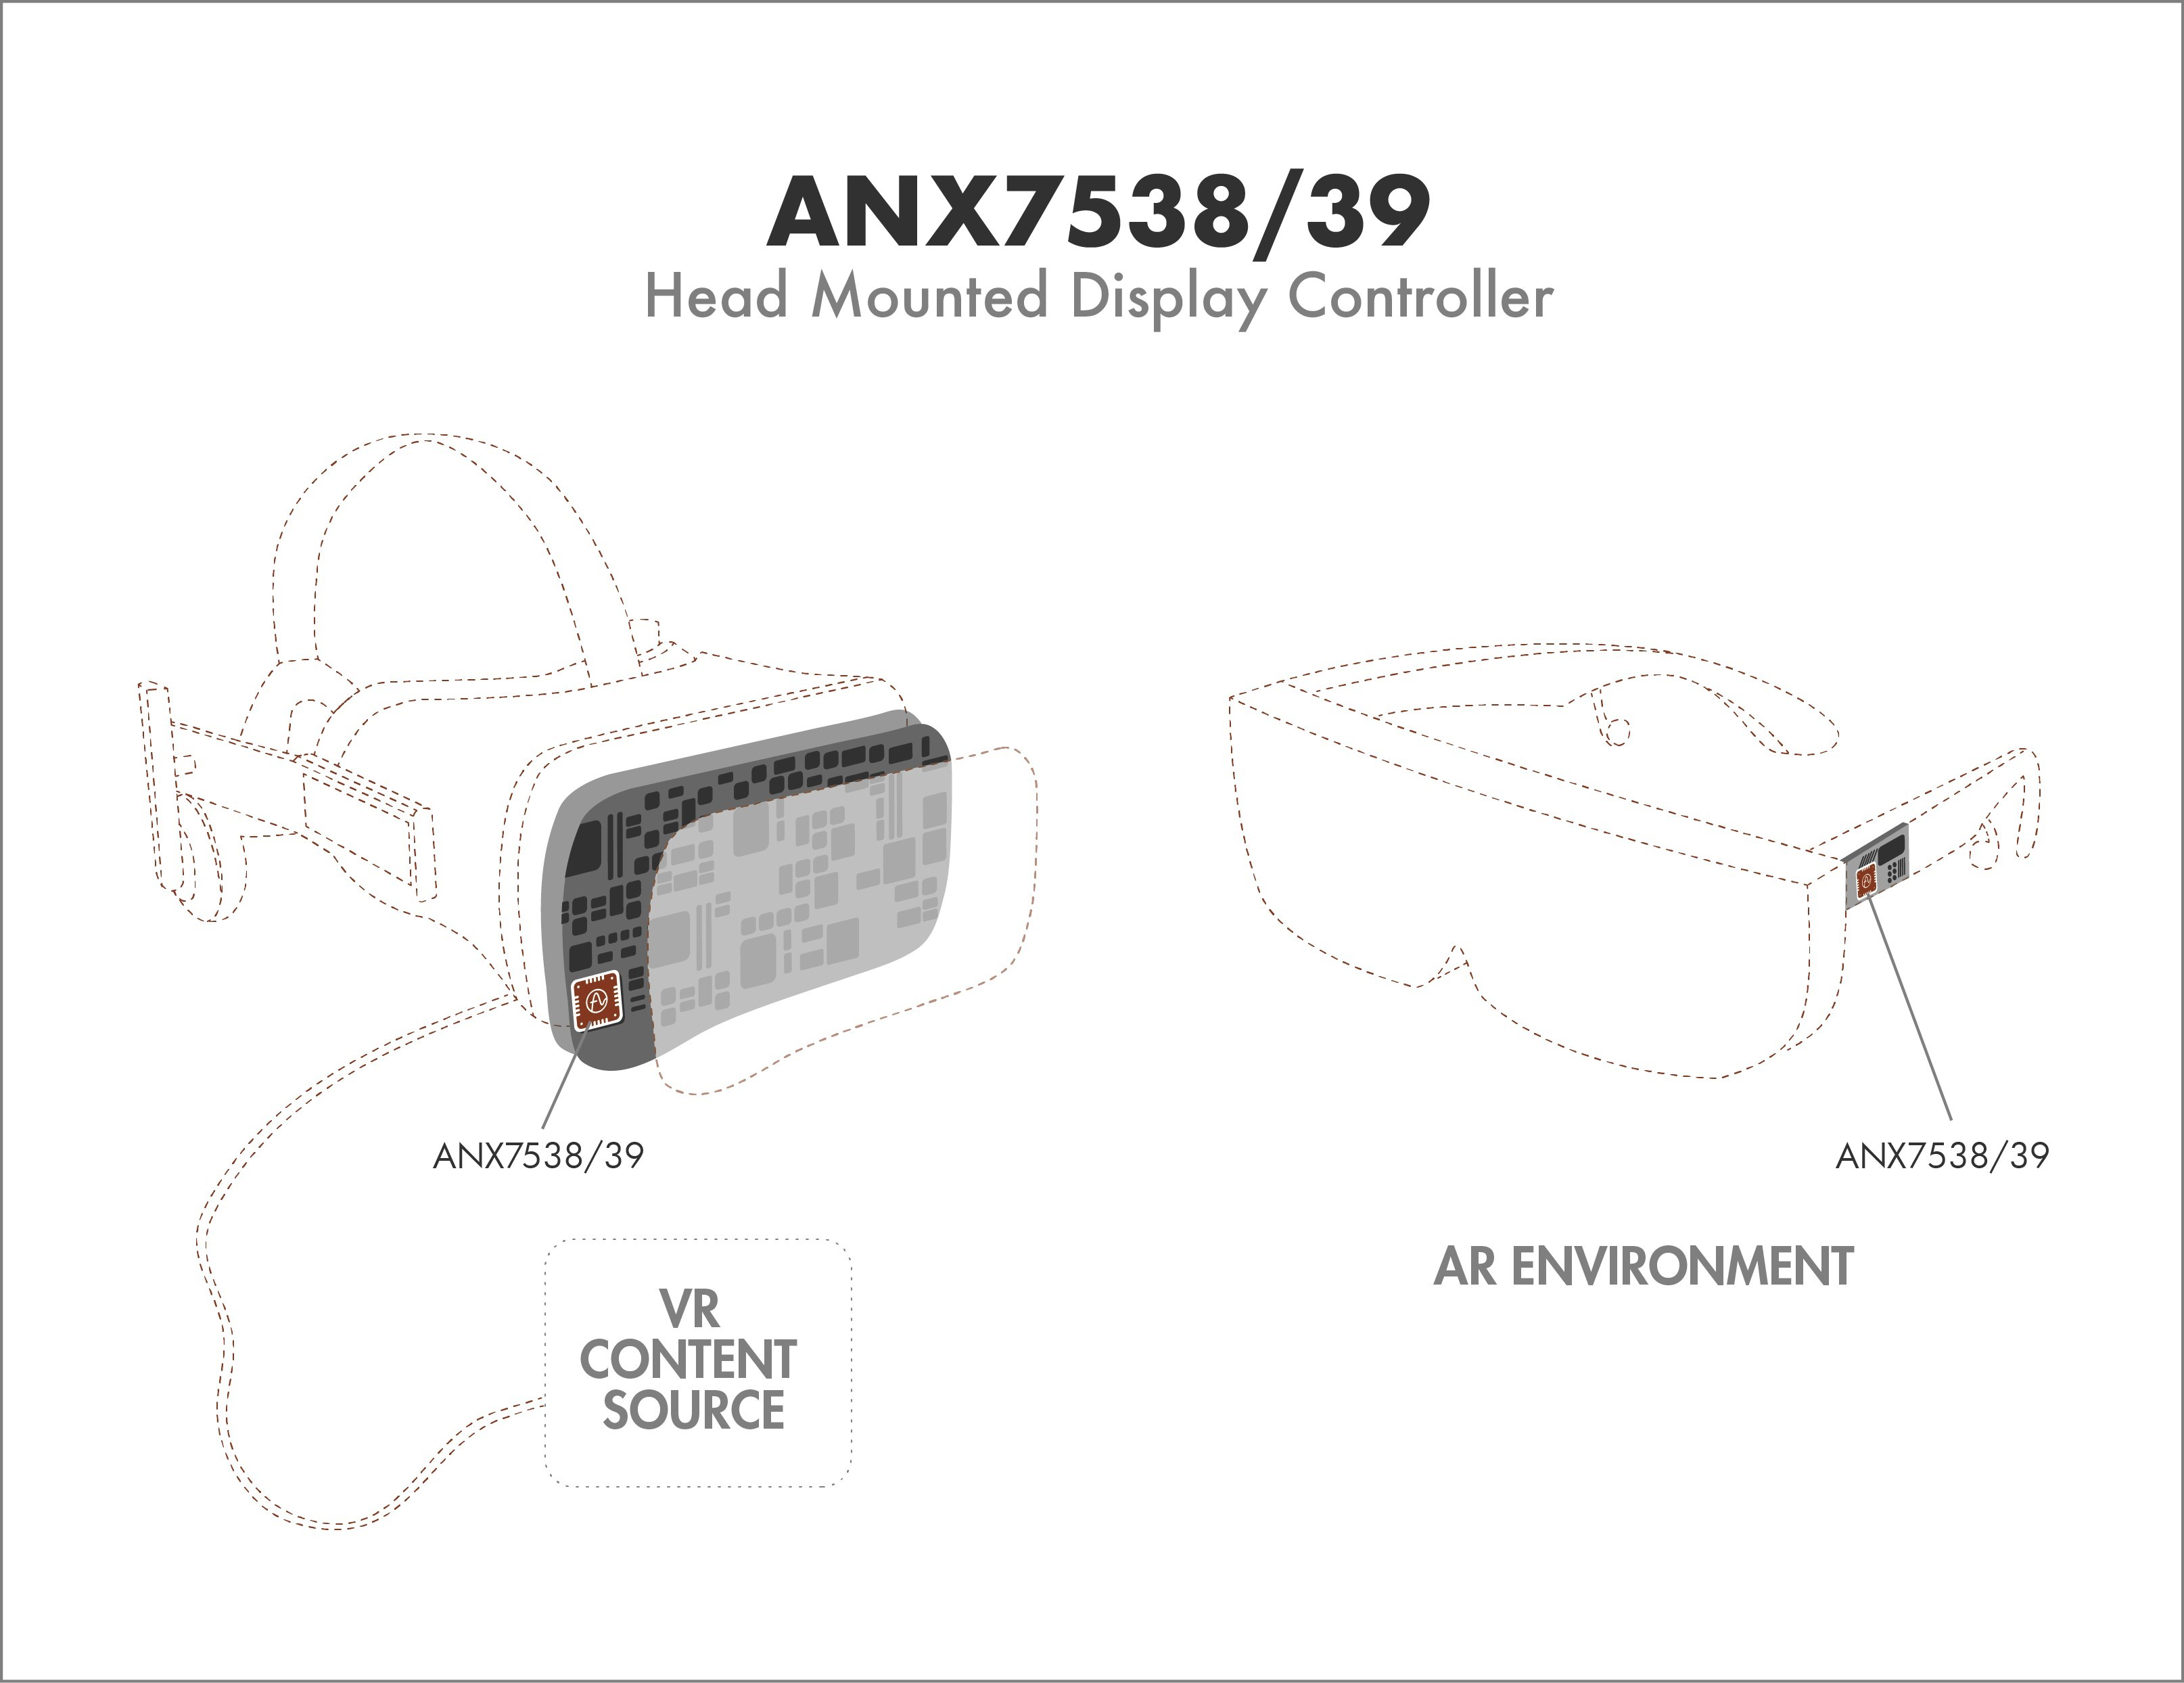 Analogix Introduces ANX7538/39 AR/VR Head-Mounted Display